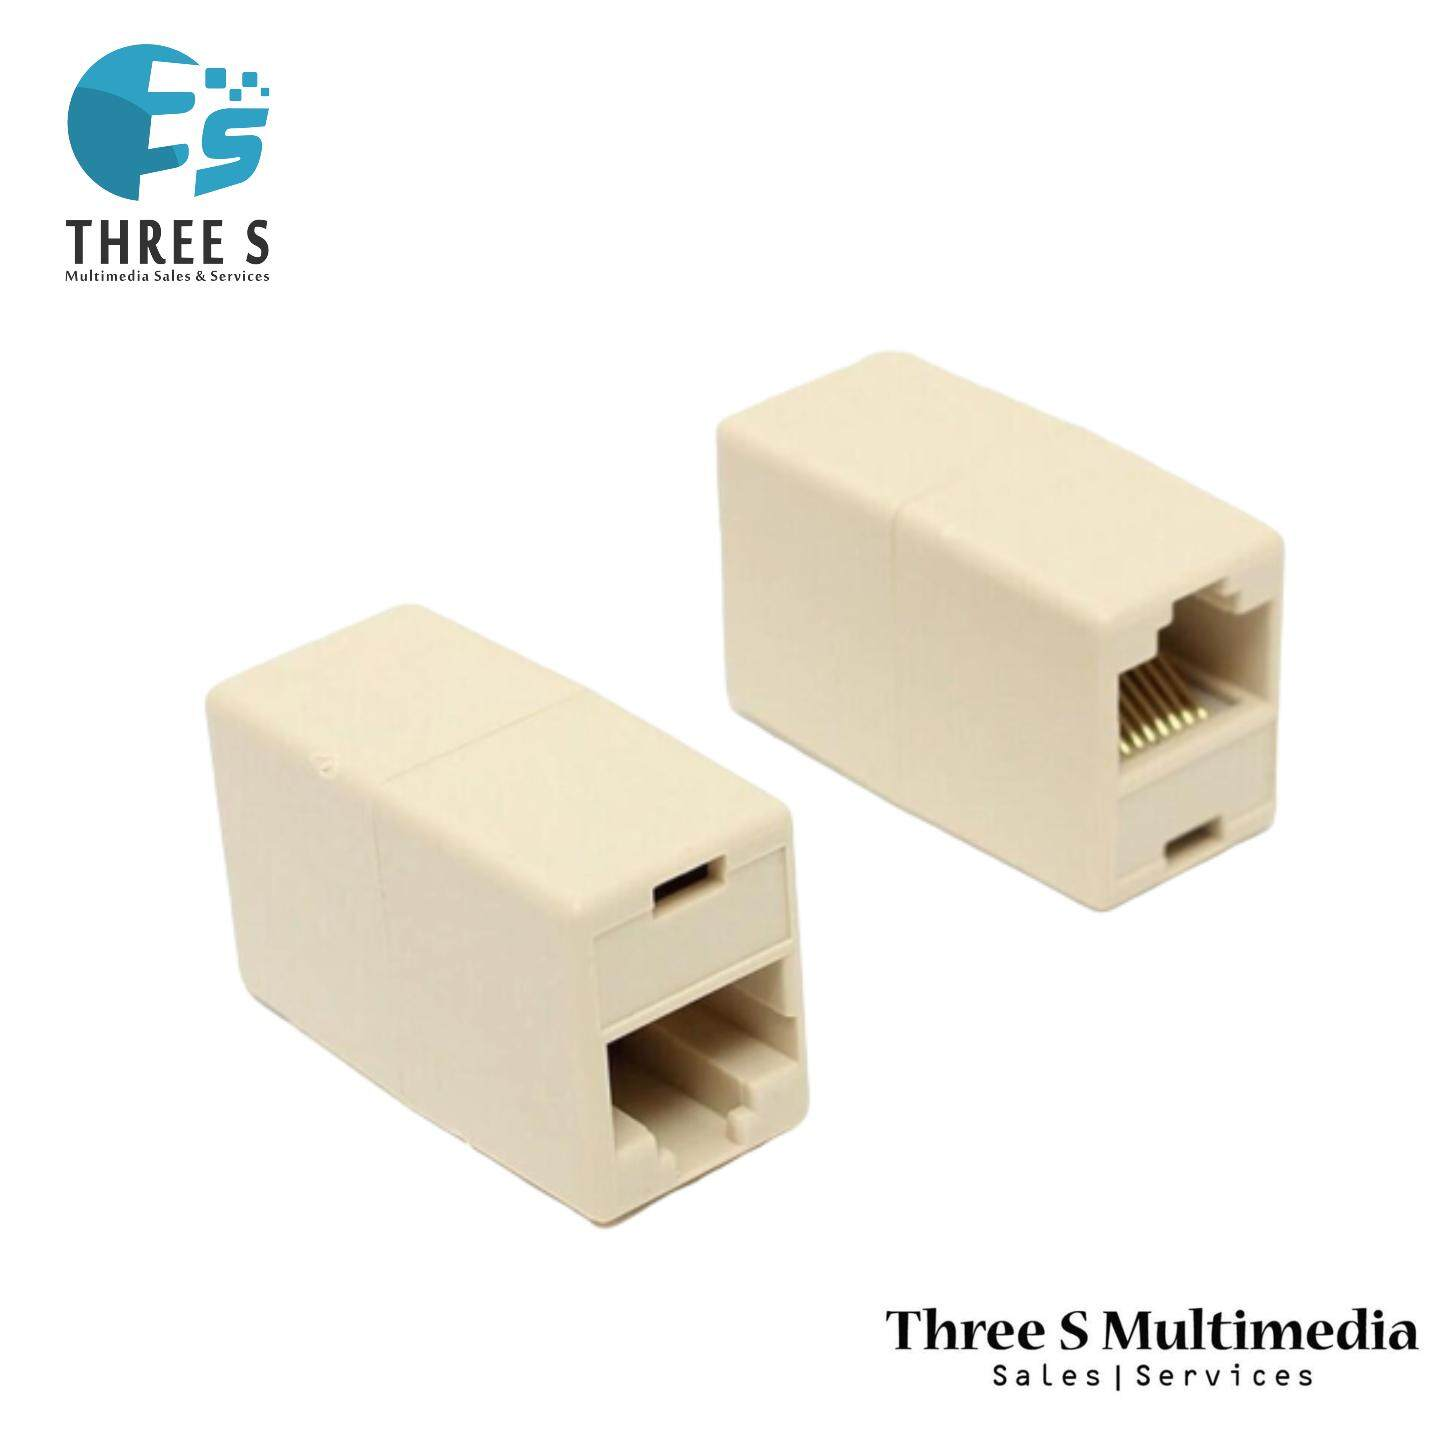 RJ45 Female Ethernet LAN Network Cat5e Extension Adapter Cable Joiner